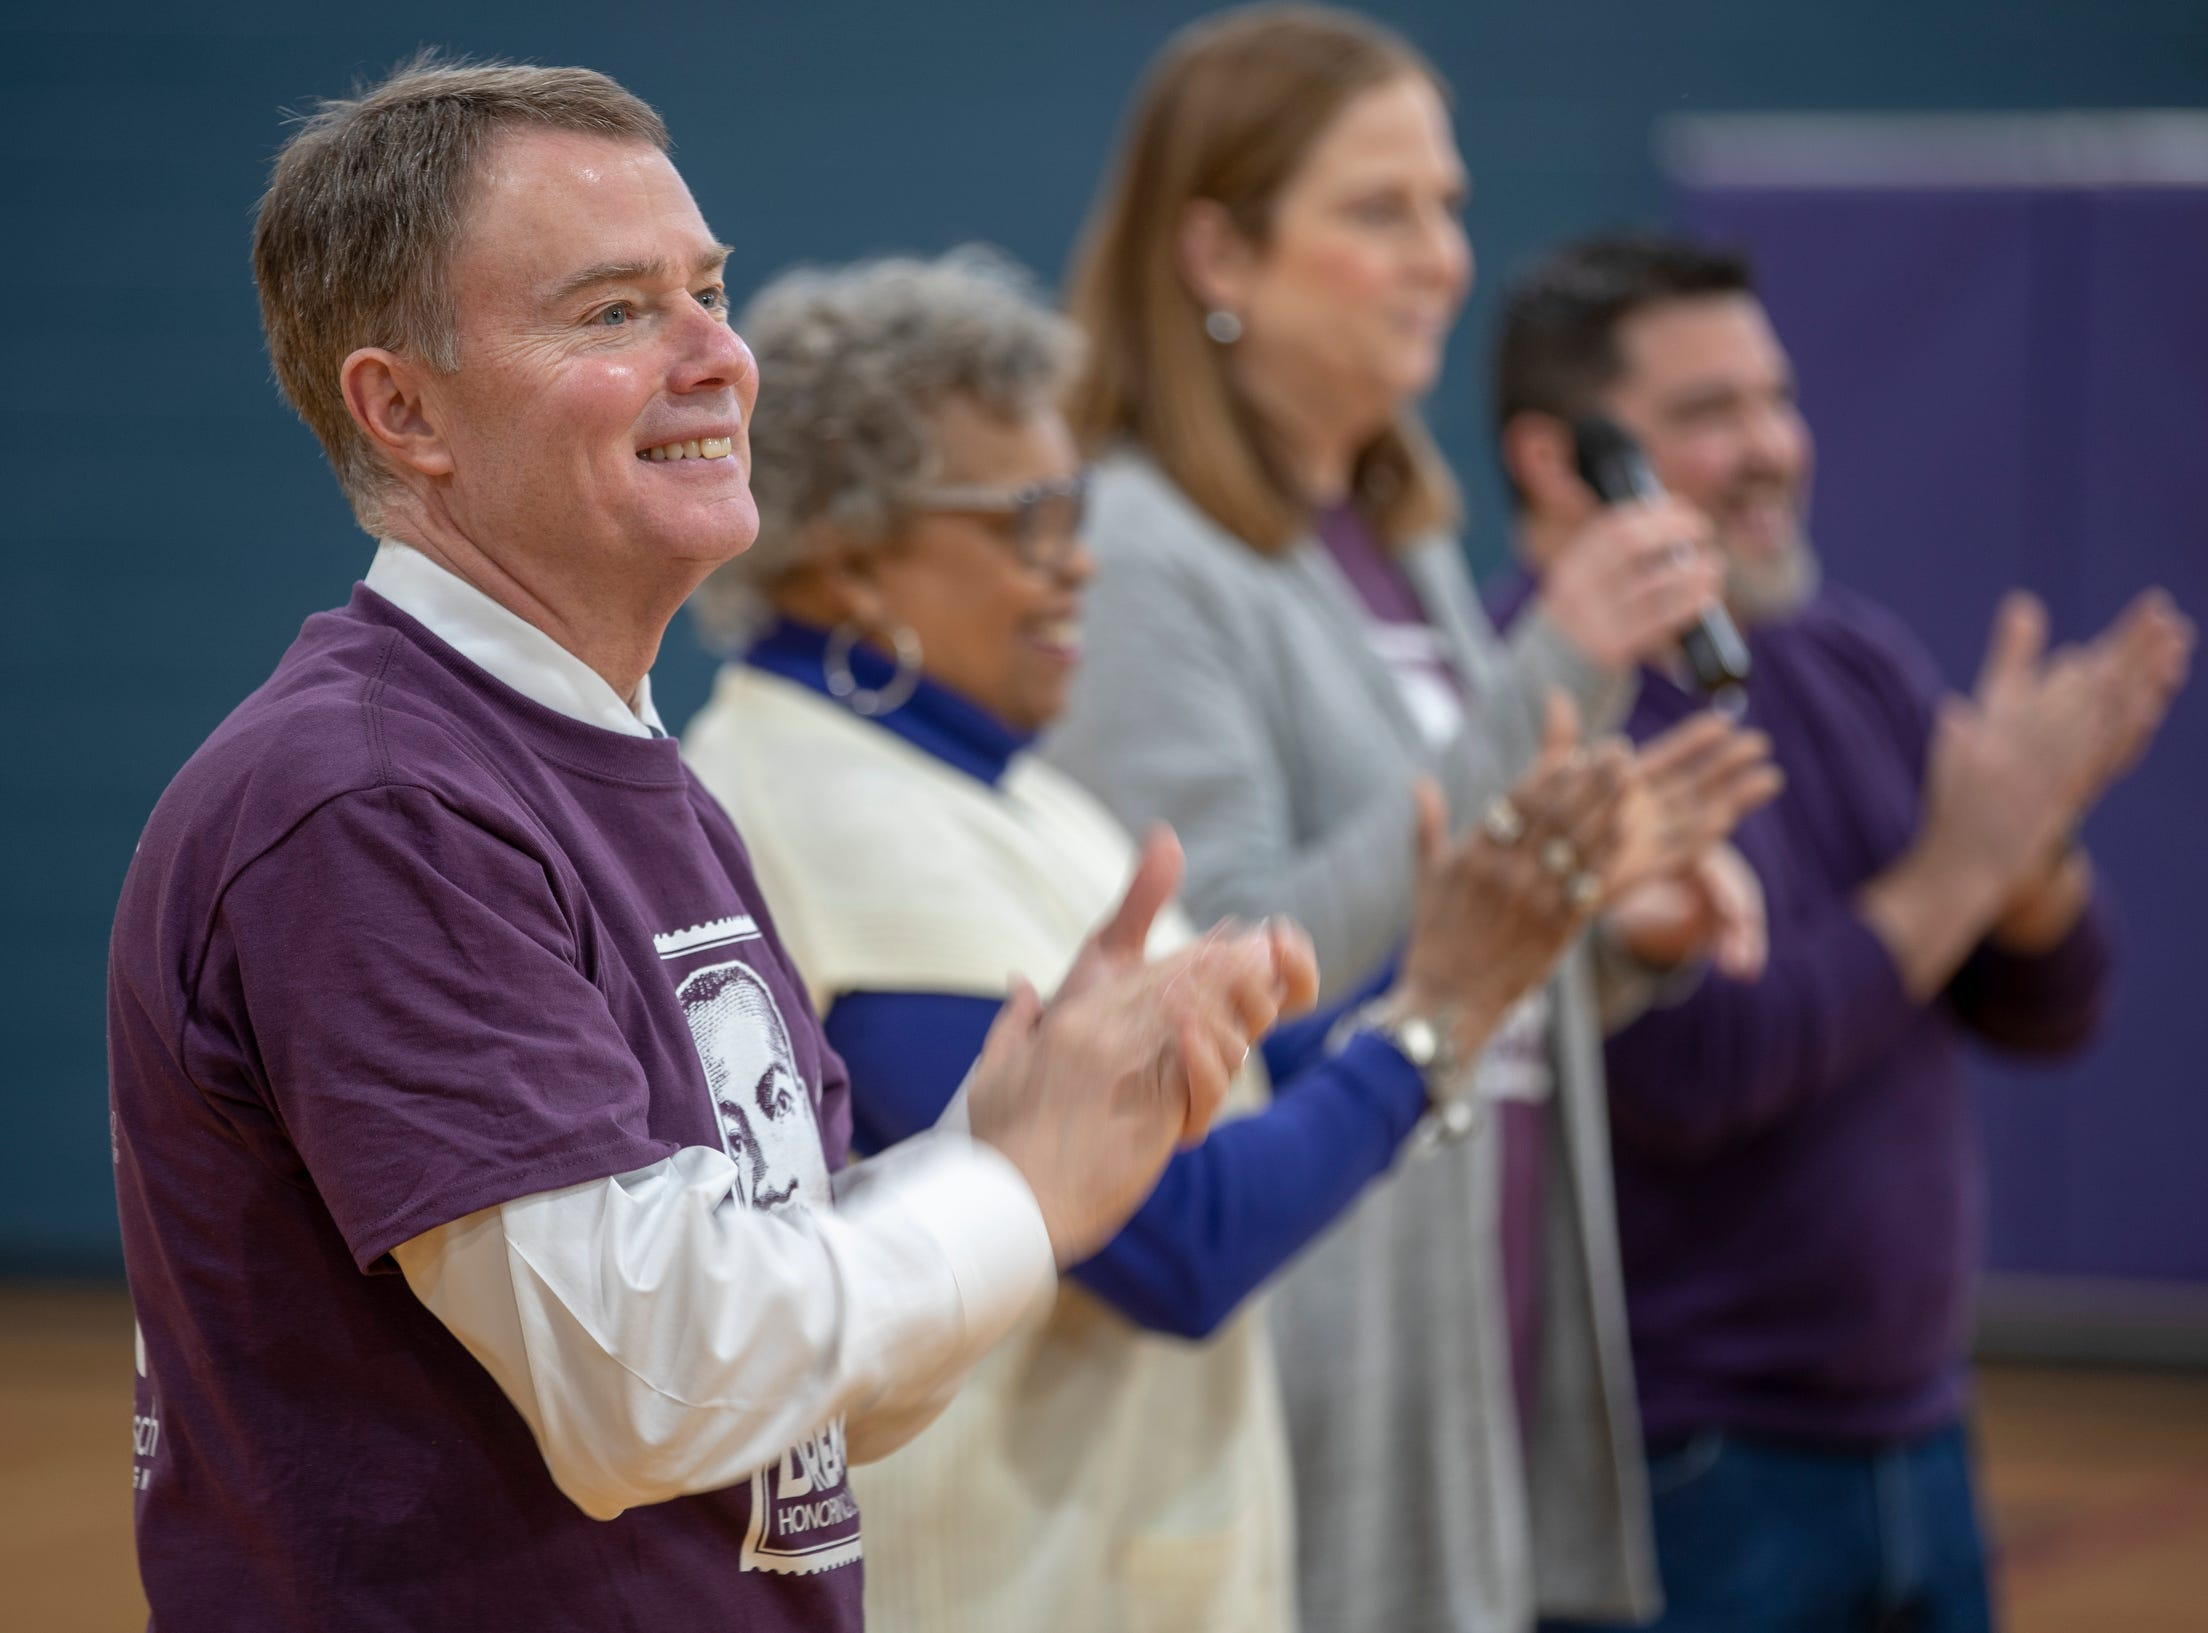 Mayor Joe Hogsett helps usher in a remodel of Frederick Douglass Park on Martin Luther King Jr. Day, Indianapolis, Monday, Jan. 21, 2019. The park includes better facilities for neighborhood kids and families to take part in such as an overhauled basketball court, pool table, and activity rooms.